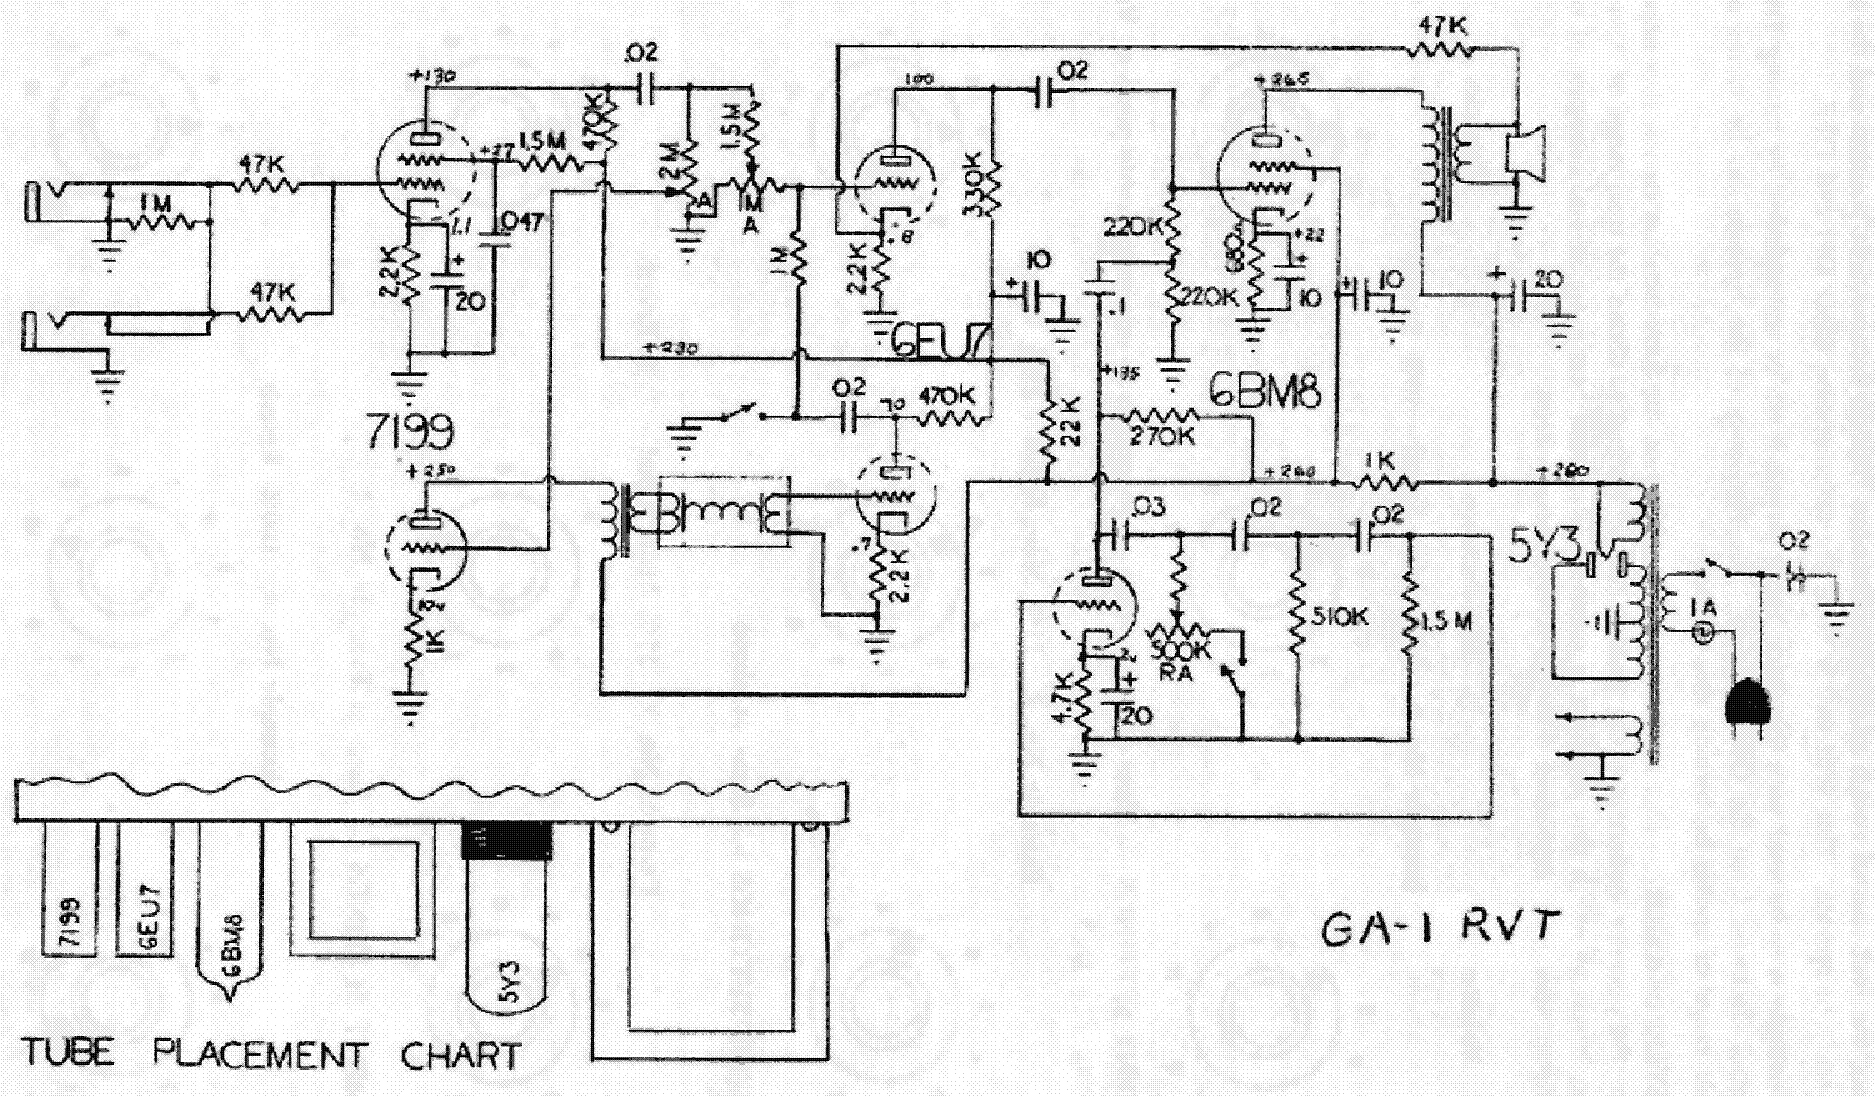 GIBSON GA-1RVT Service Manual download, schematics, eeprom